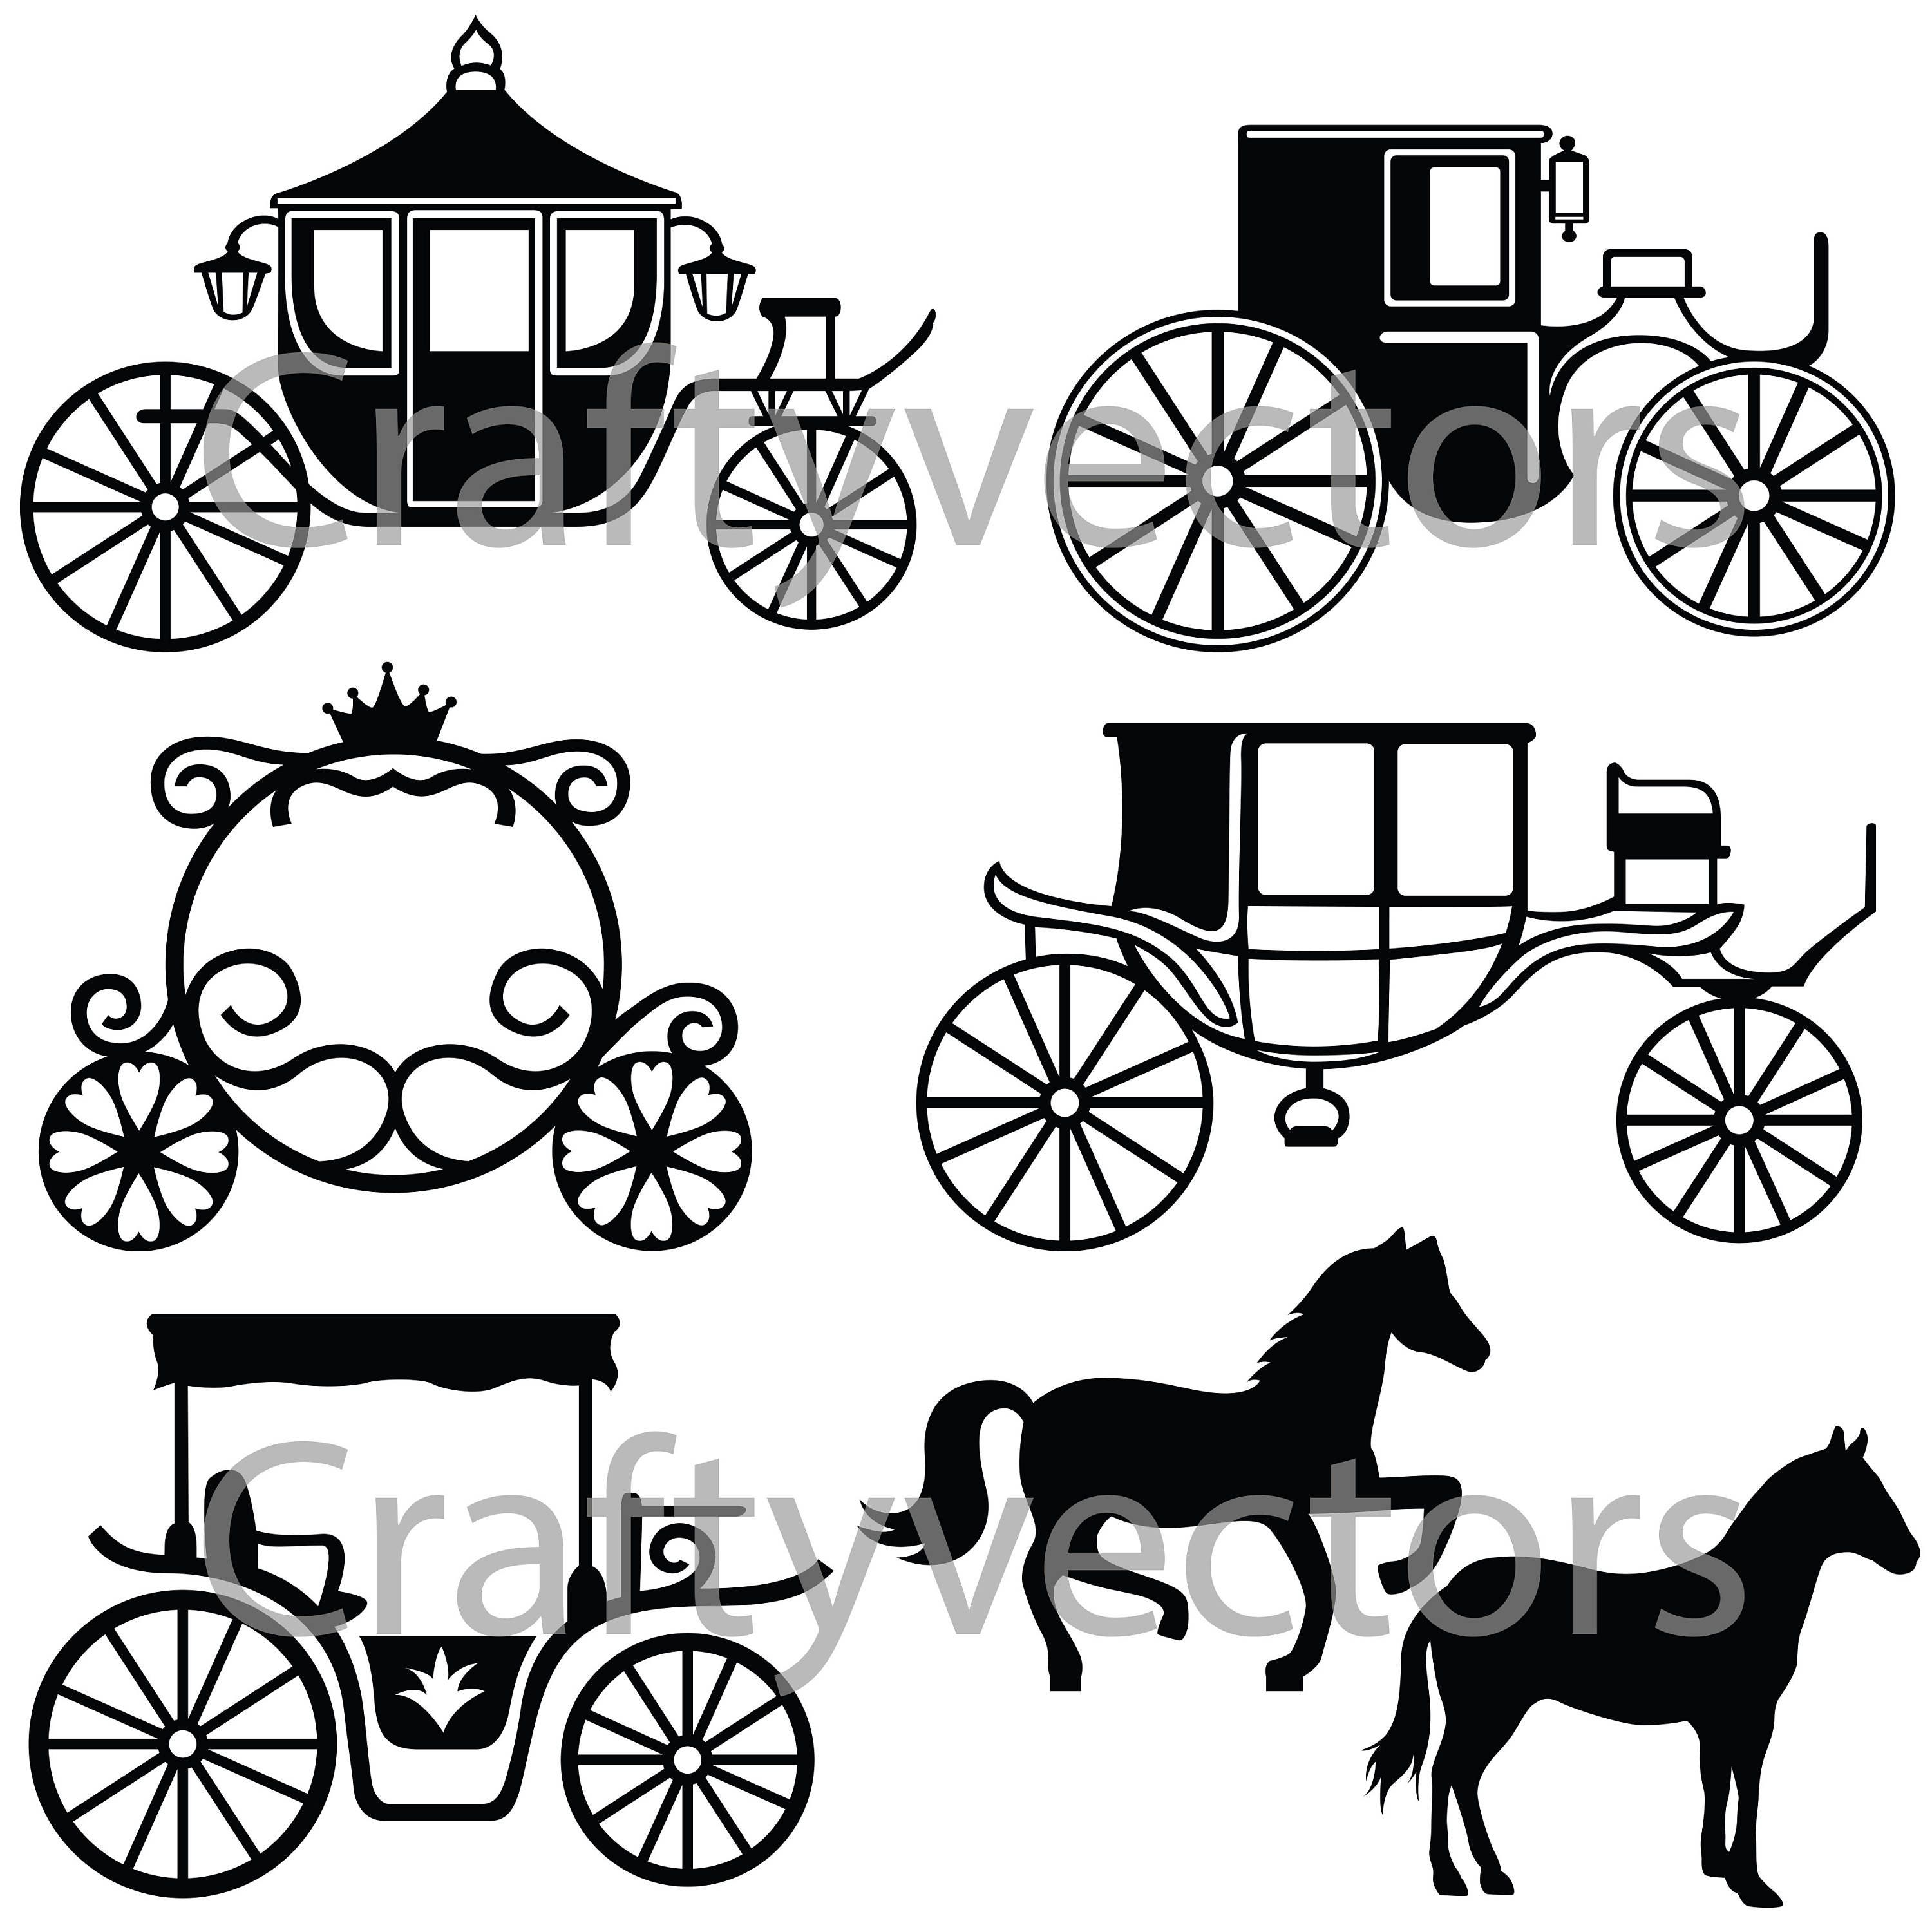 Horse-drawn Carriages Silhouettes Vector SVG